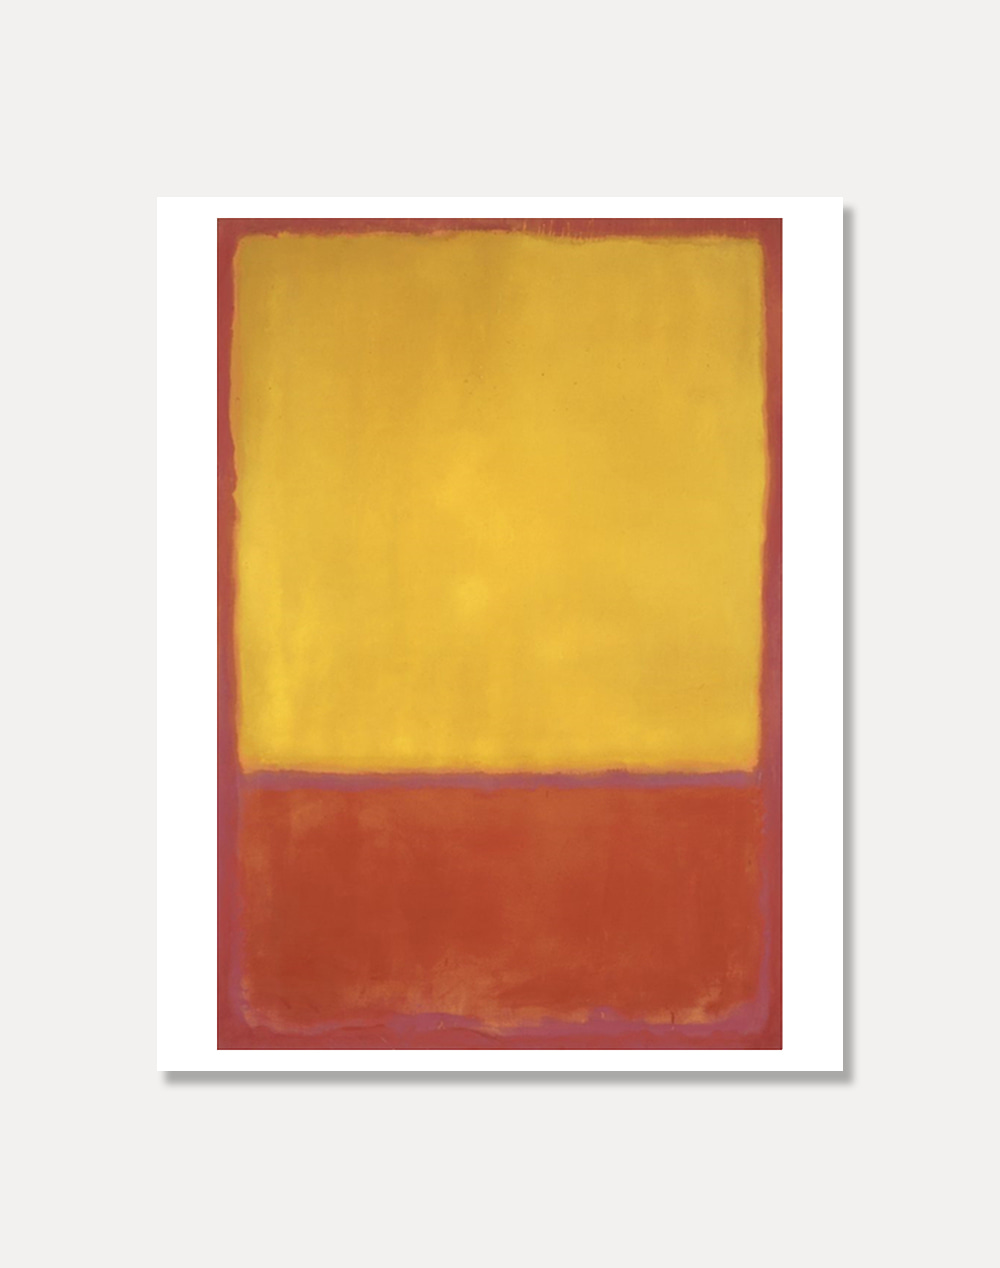 [마크로스코]MARK ROTHKO — Ochre and Red on Red 81 x 101 cm